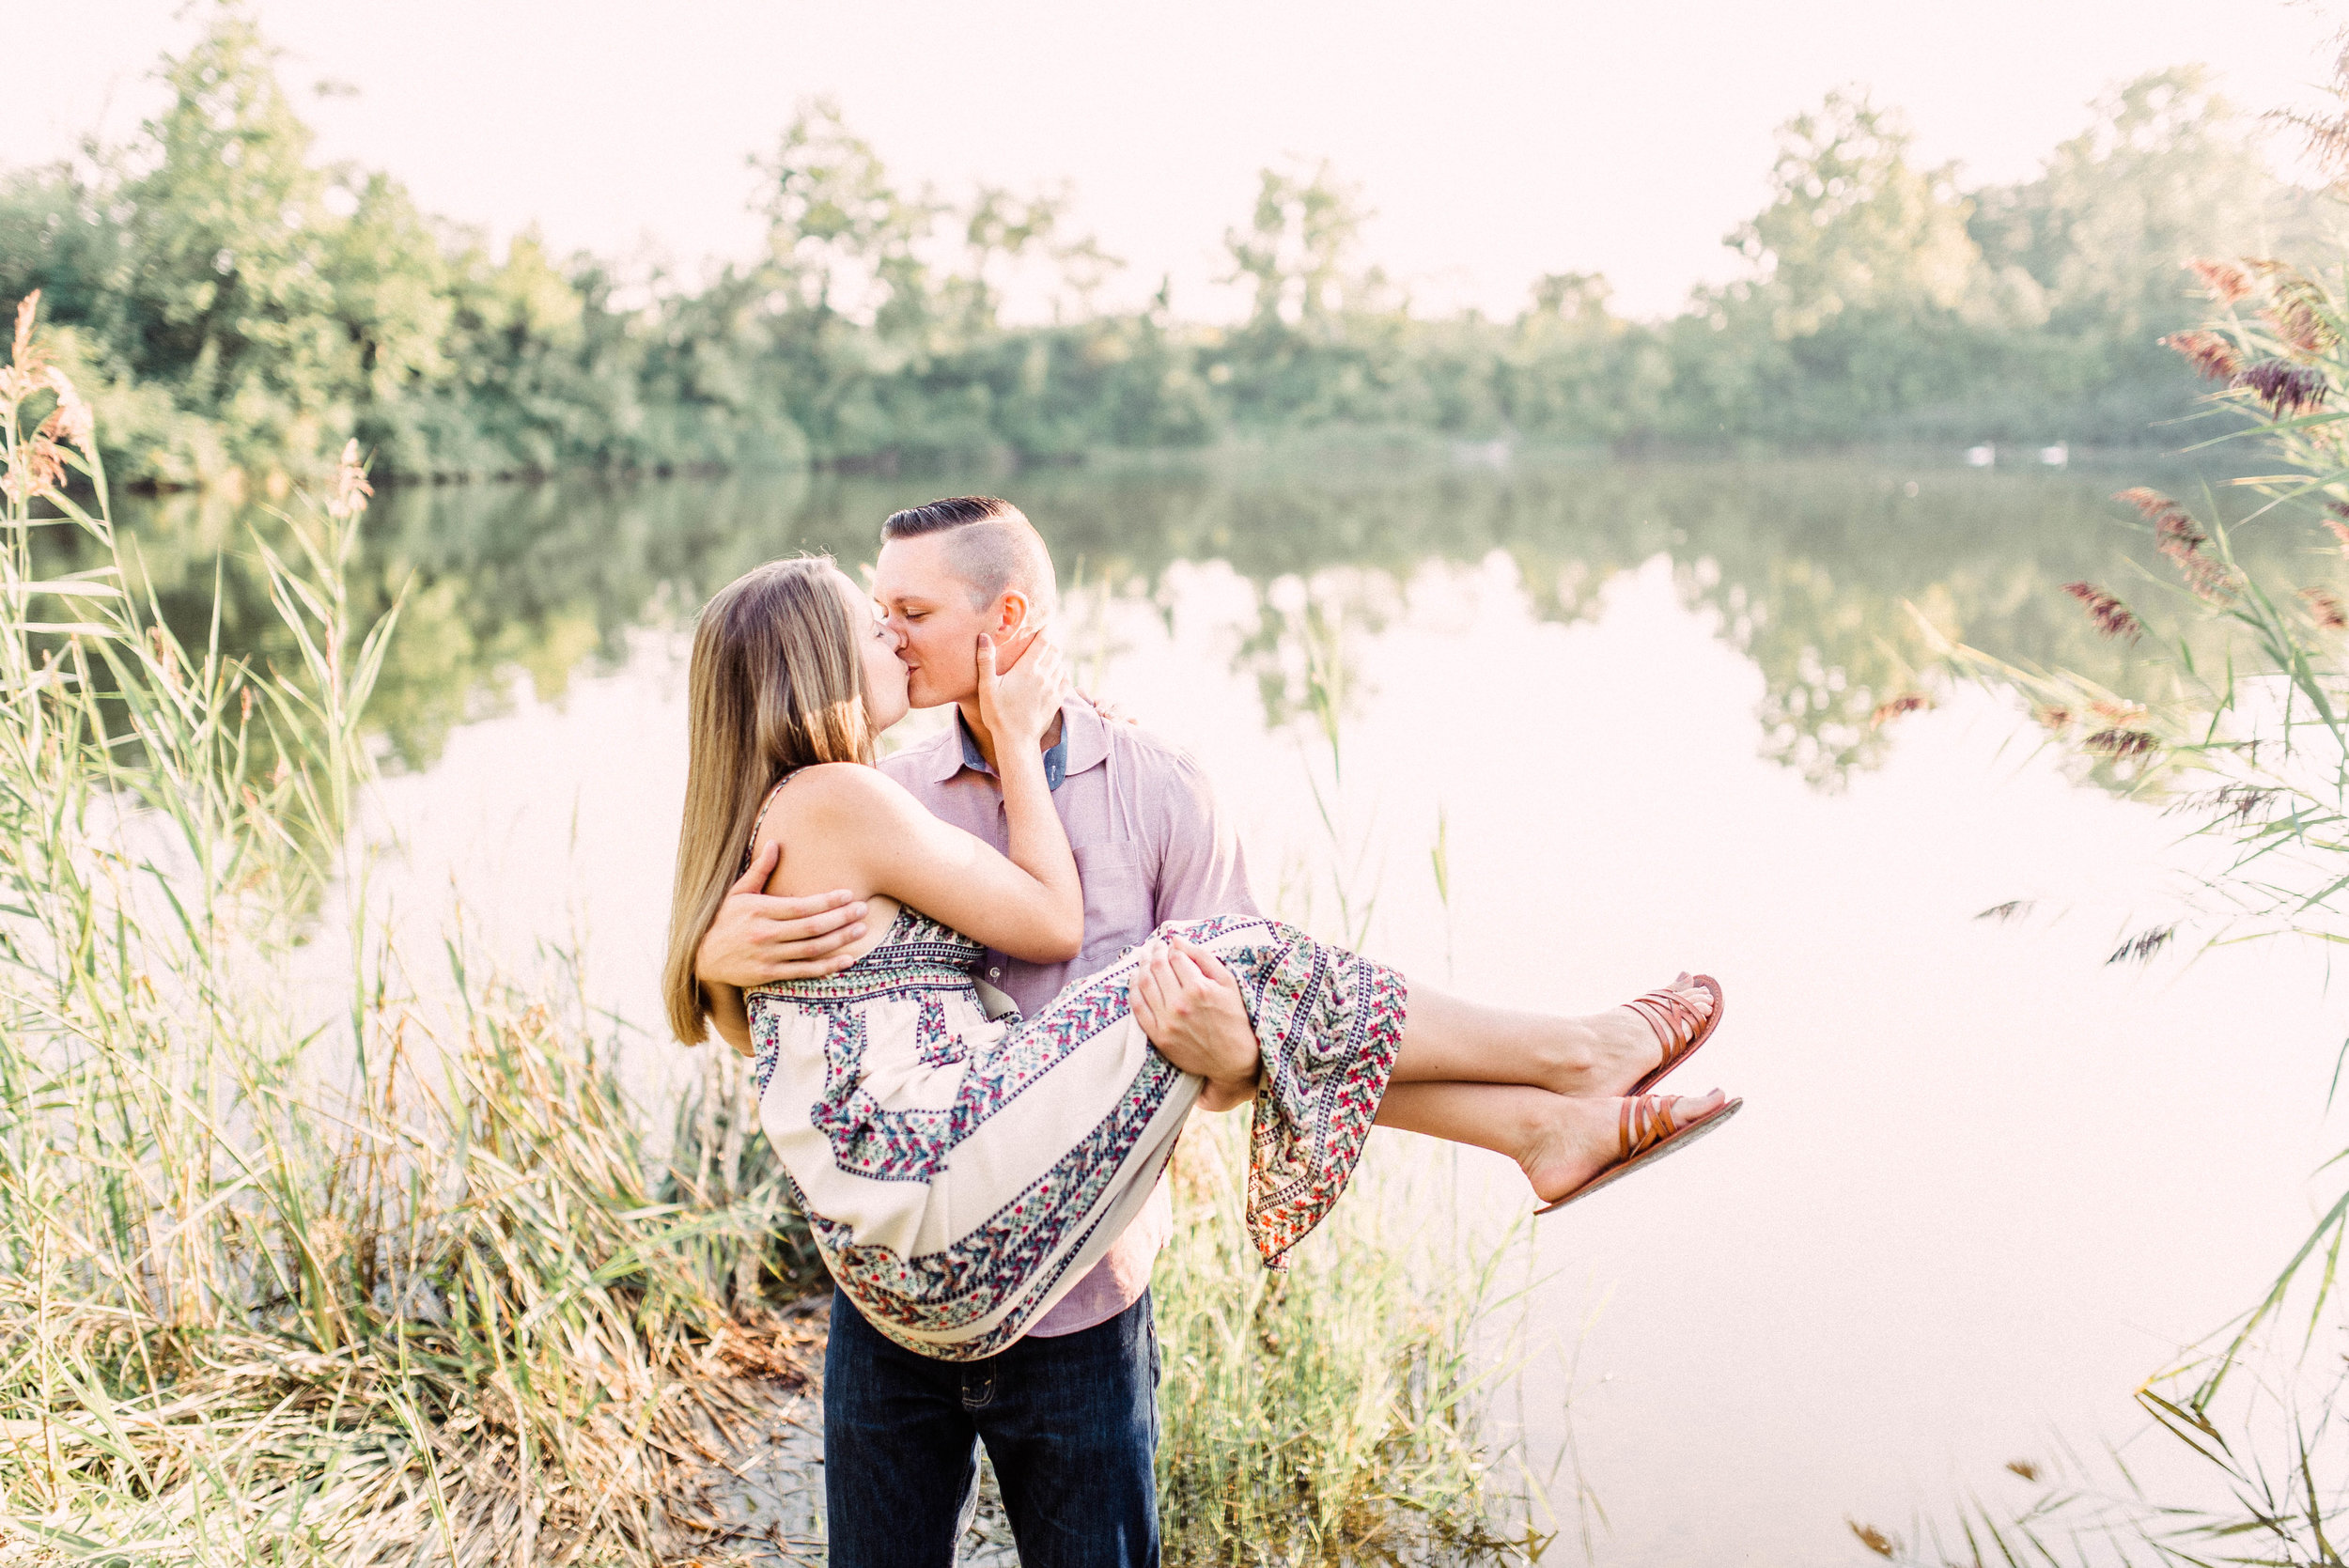 Kandace + Michael | A Romantic and Carefree Engagement Photography Session at a Park in Carmel, IN | Indianapolis Elopement & Destination Wedding Photographers